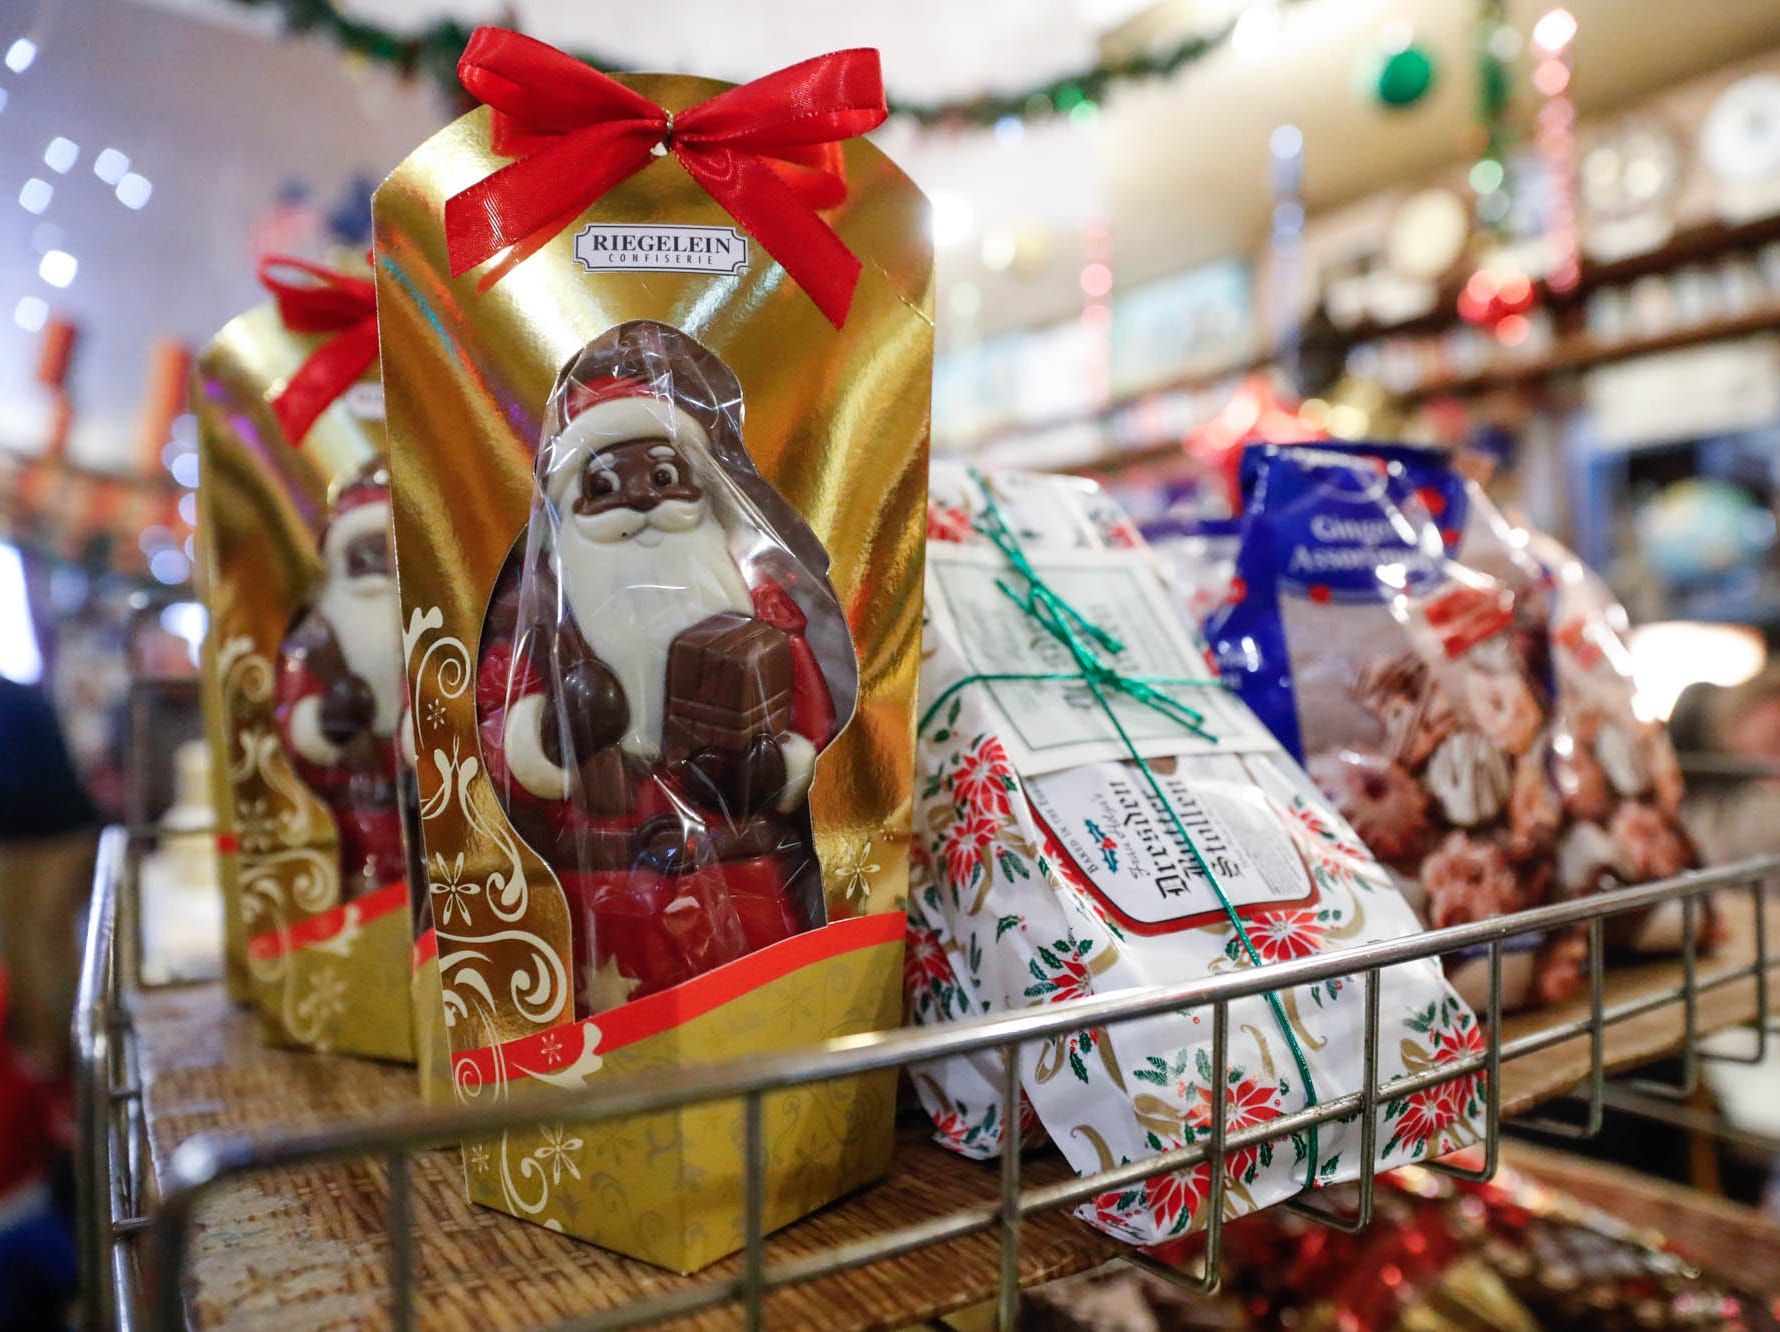 Chocolate Santa's are for sale at the Heidelberg Haus Cafe and Bakery, 7625 Pendleton Pike, Indianapolis Ind., on Saturday, Dec. 8th, 2018. The cafe, bakery, and German grocery are well known for its extensive collection of German Kitsch.